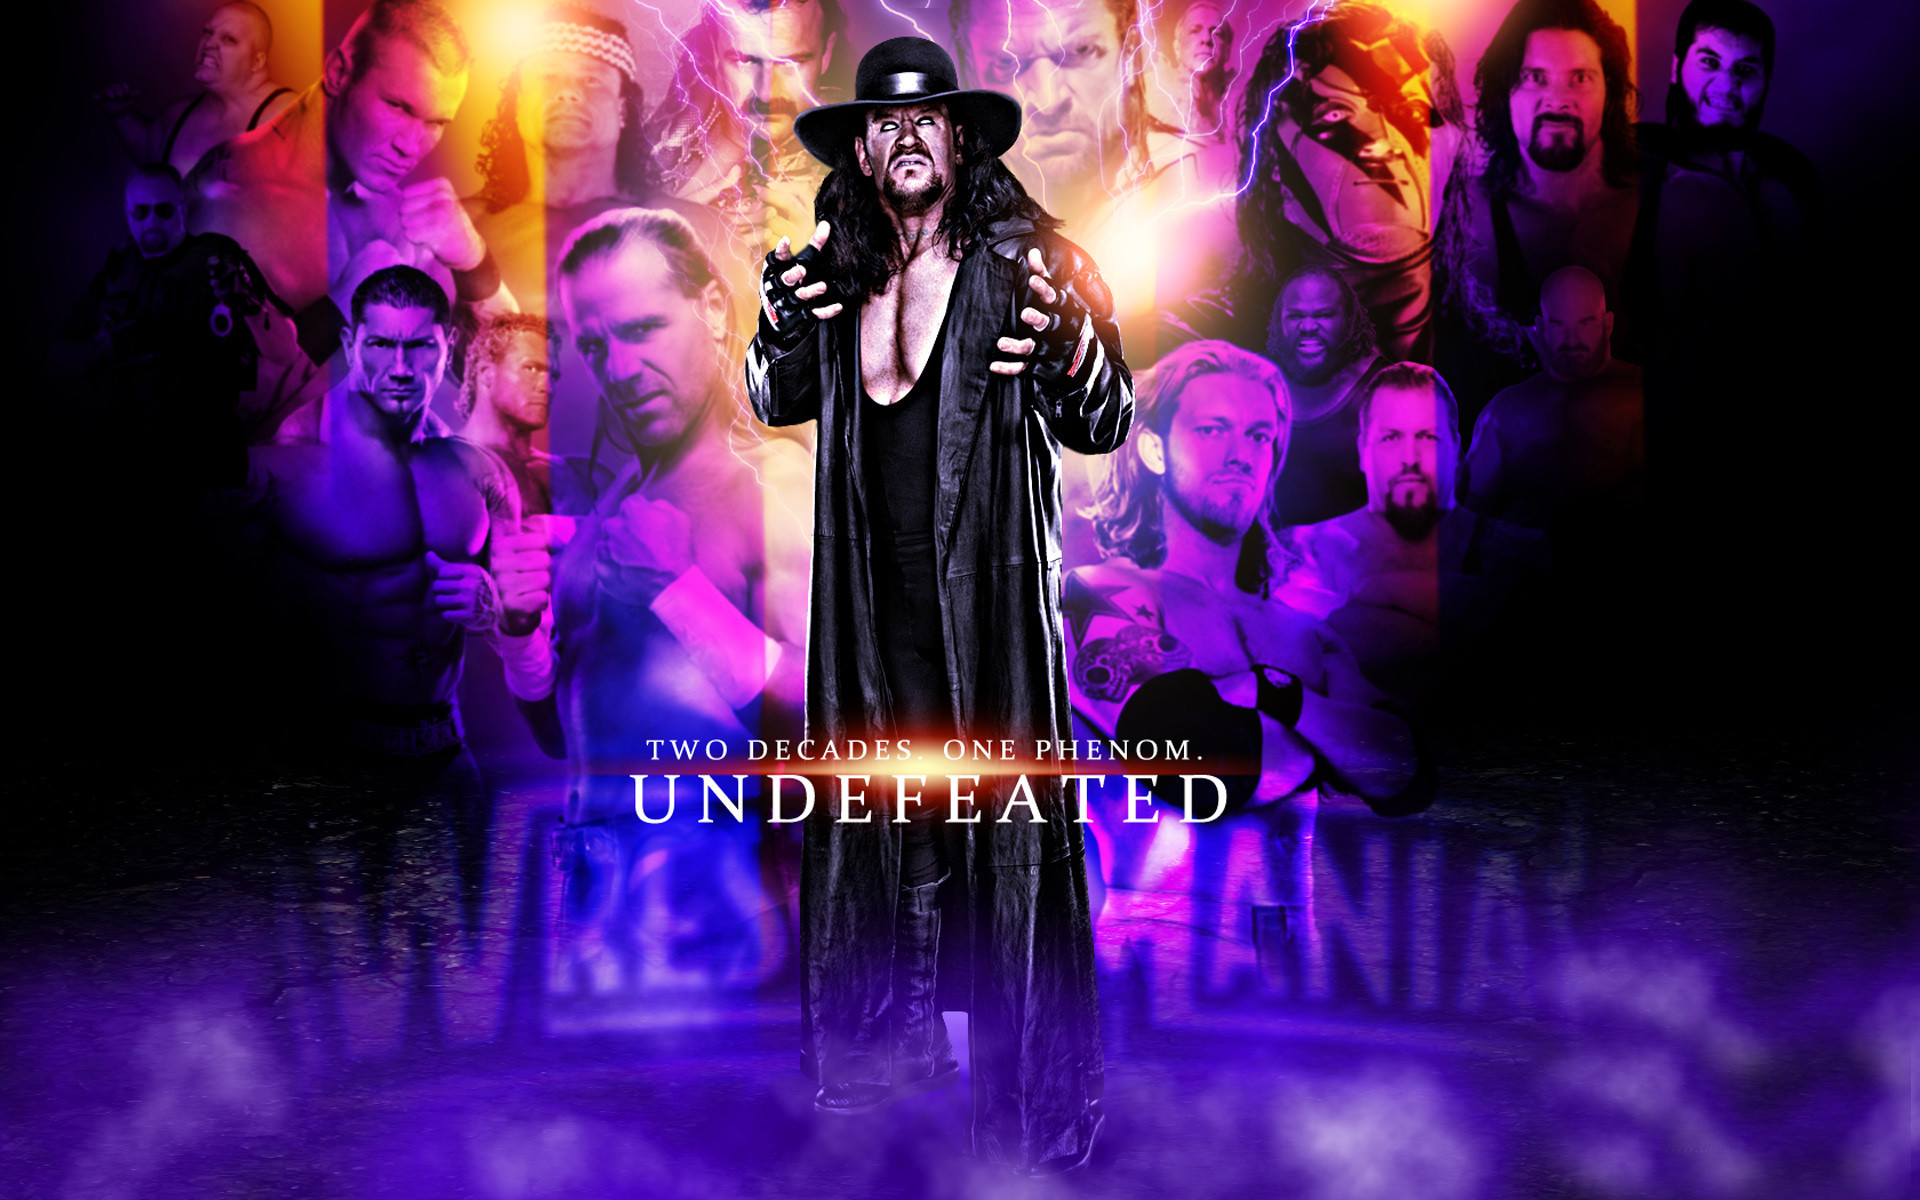 1920x1200 Hd Wallpapers Of Undertaker Wallpaper Galleries